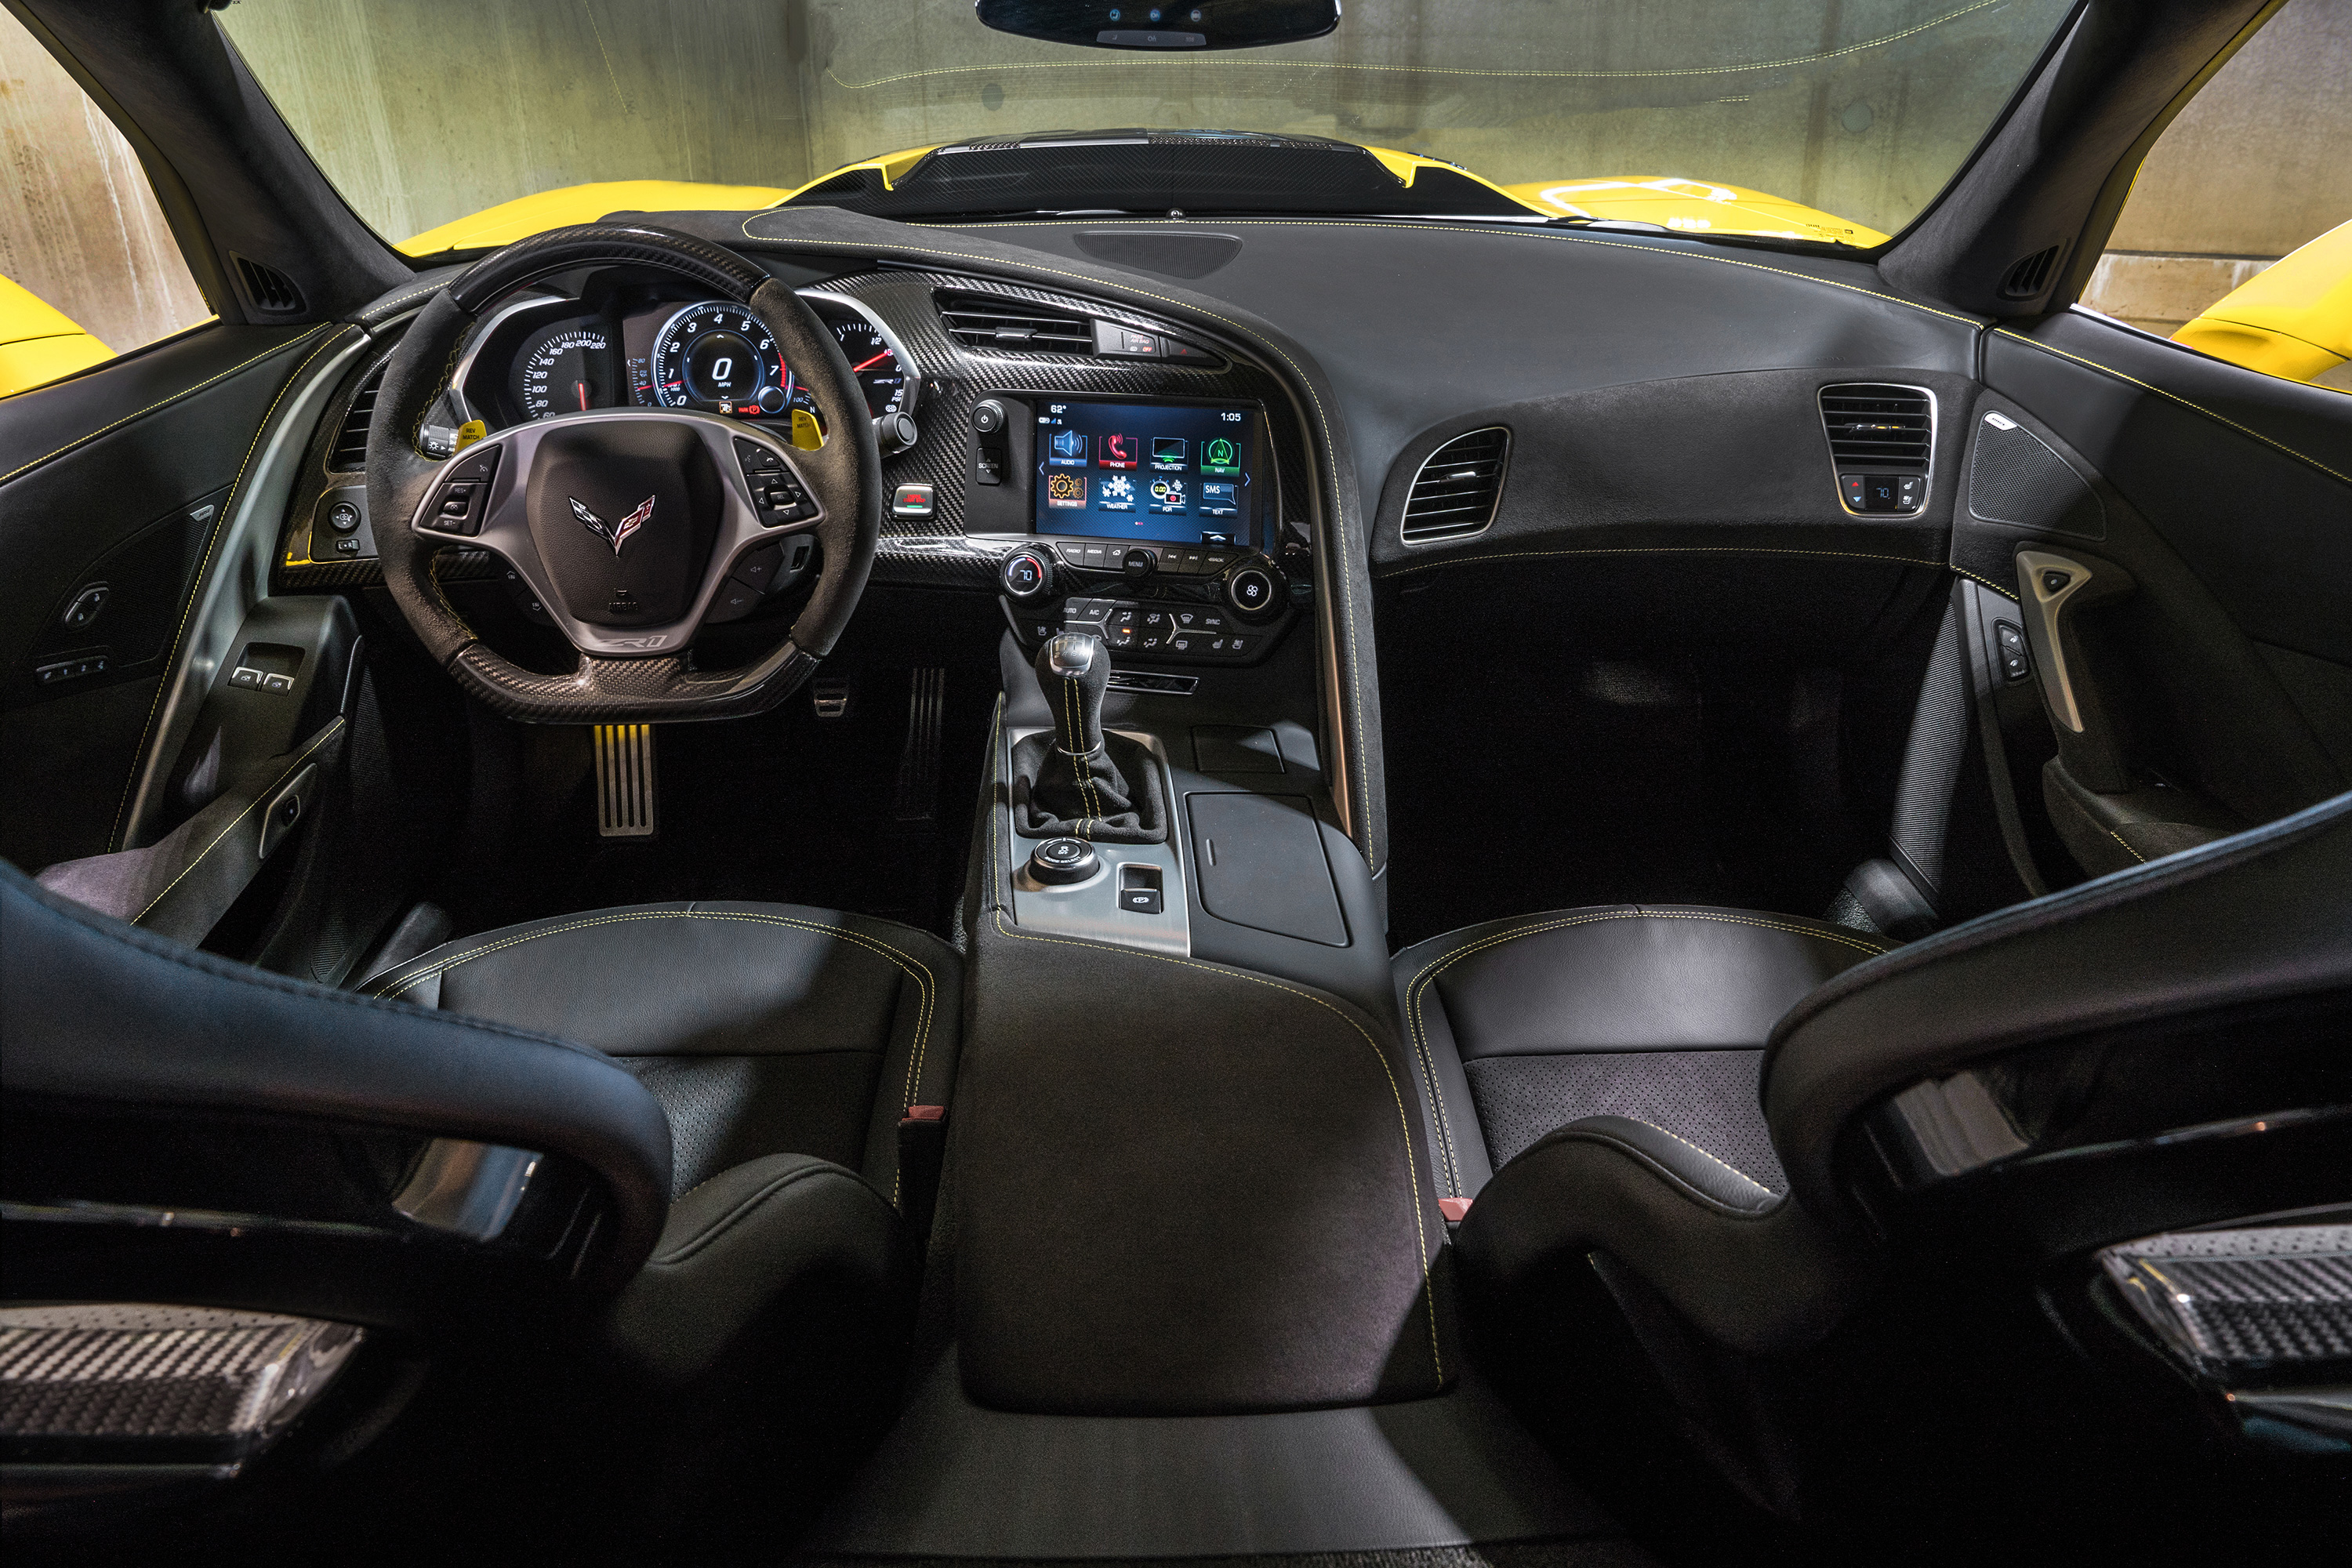 2019 chevrolet corvette zr1 interior dark